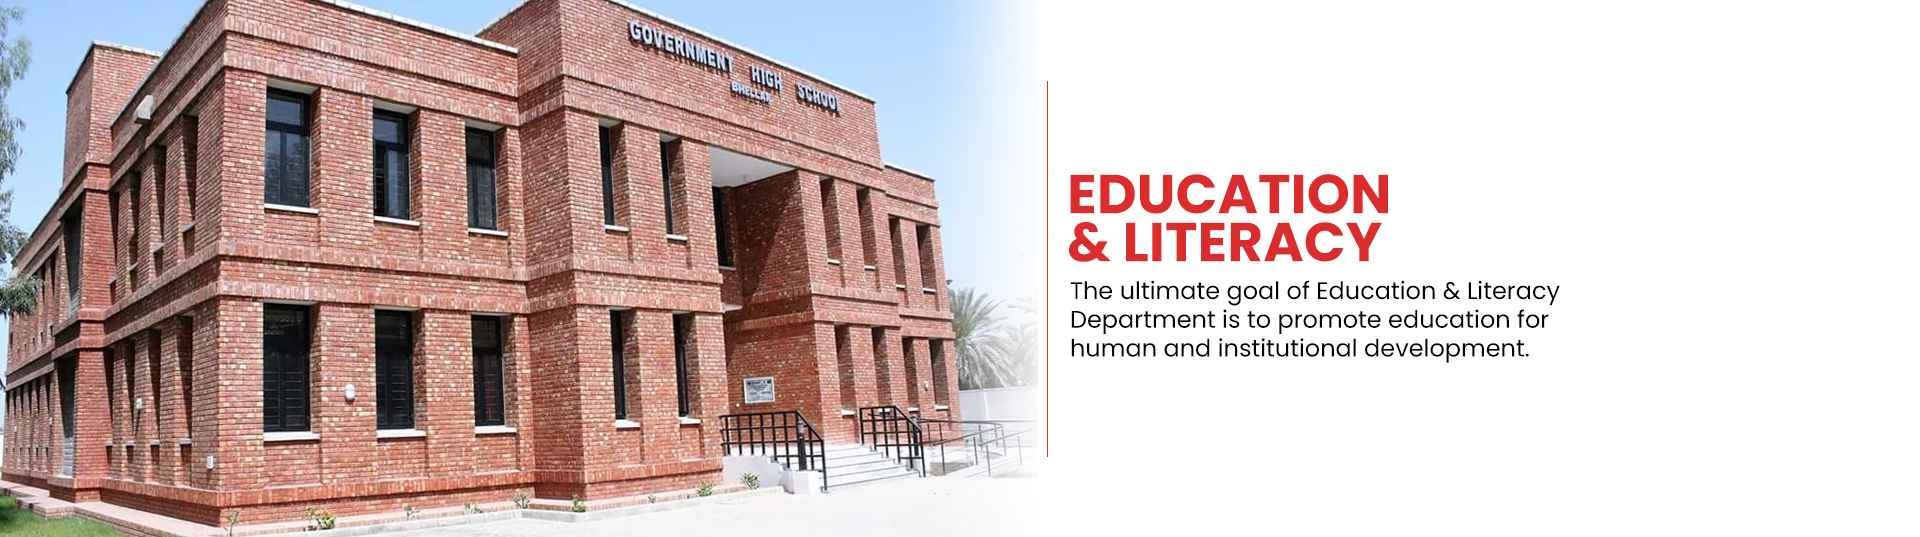 Education and Literacy Department